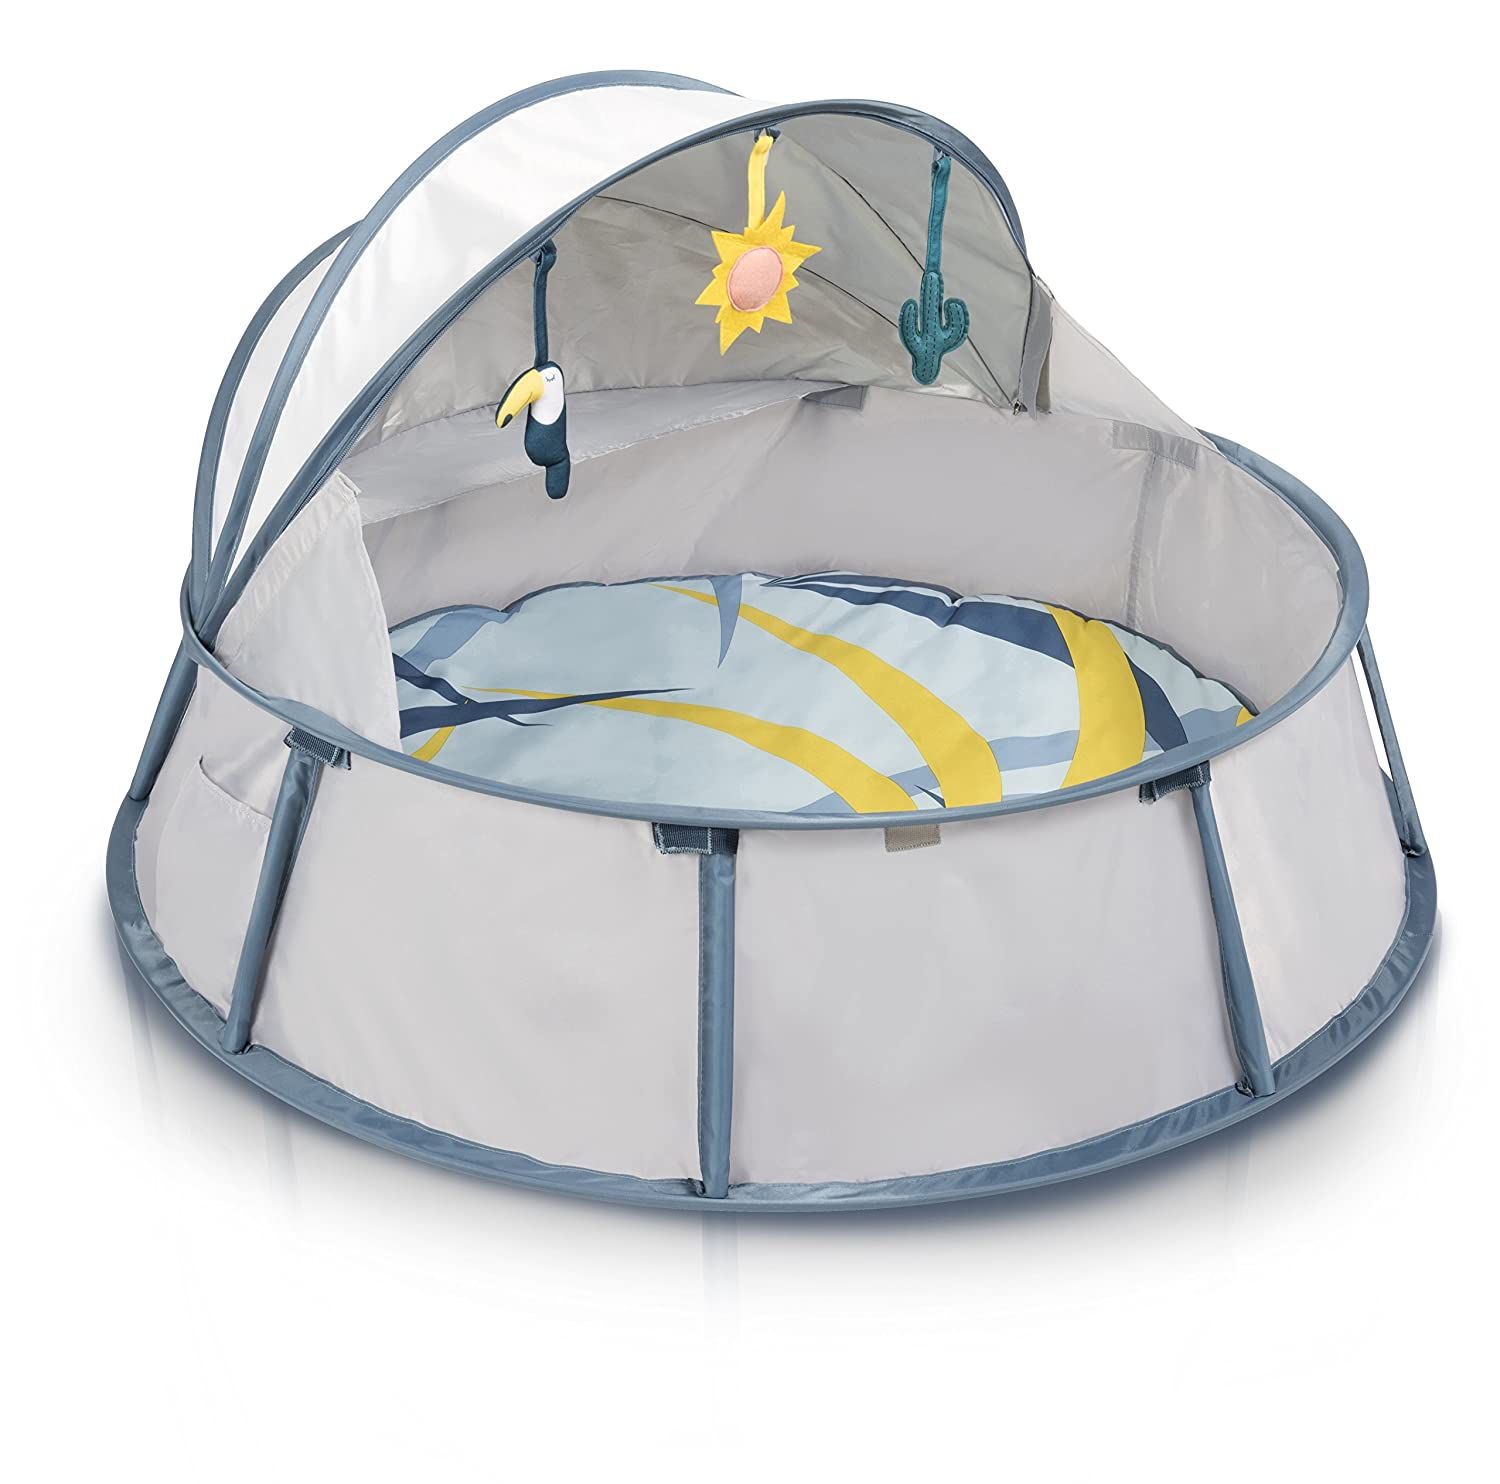 For Indoor /& Outdoor Use 6 Toys Included Mosquito Net Pop-Up Tent /& Travel Bassinet for Babies UPF 50+ Canopy Babymoov Babyni Activity Gym